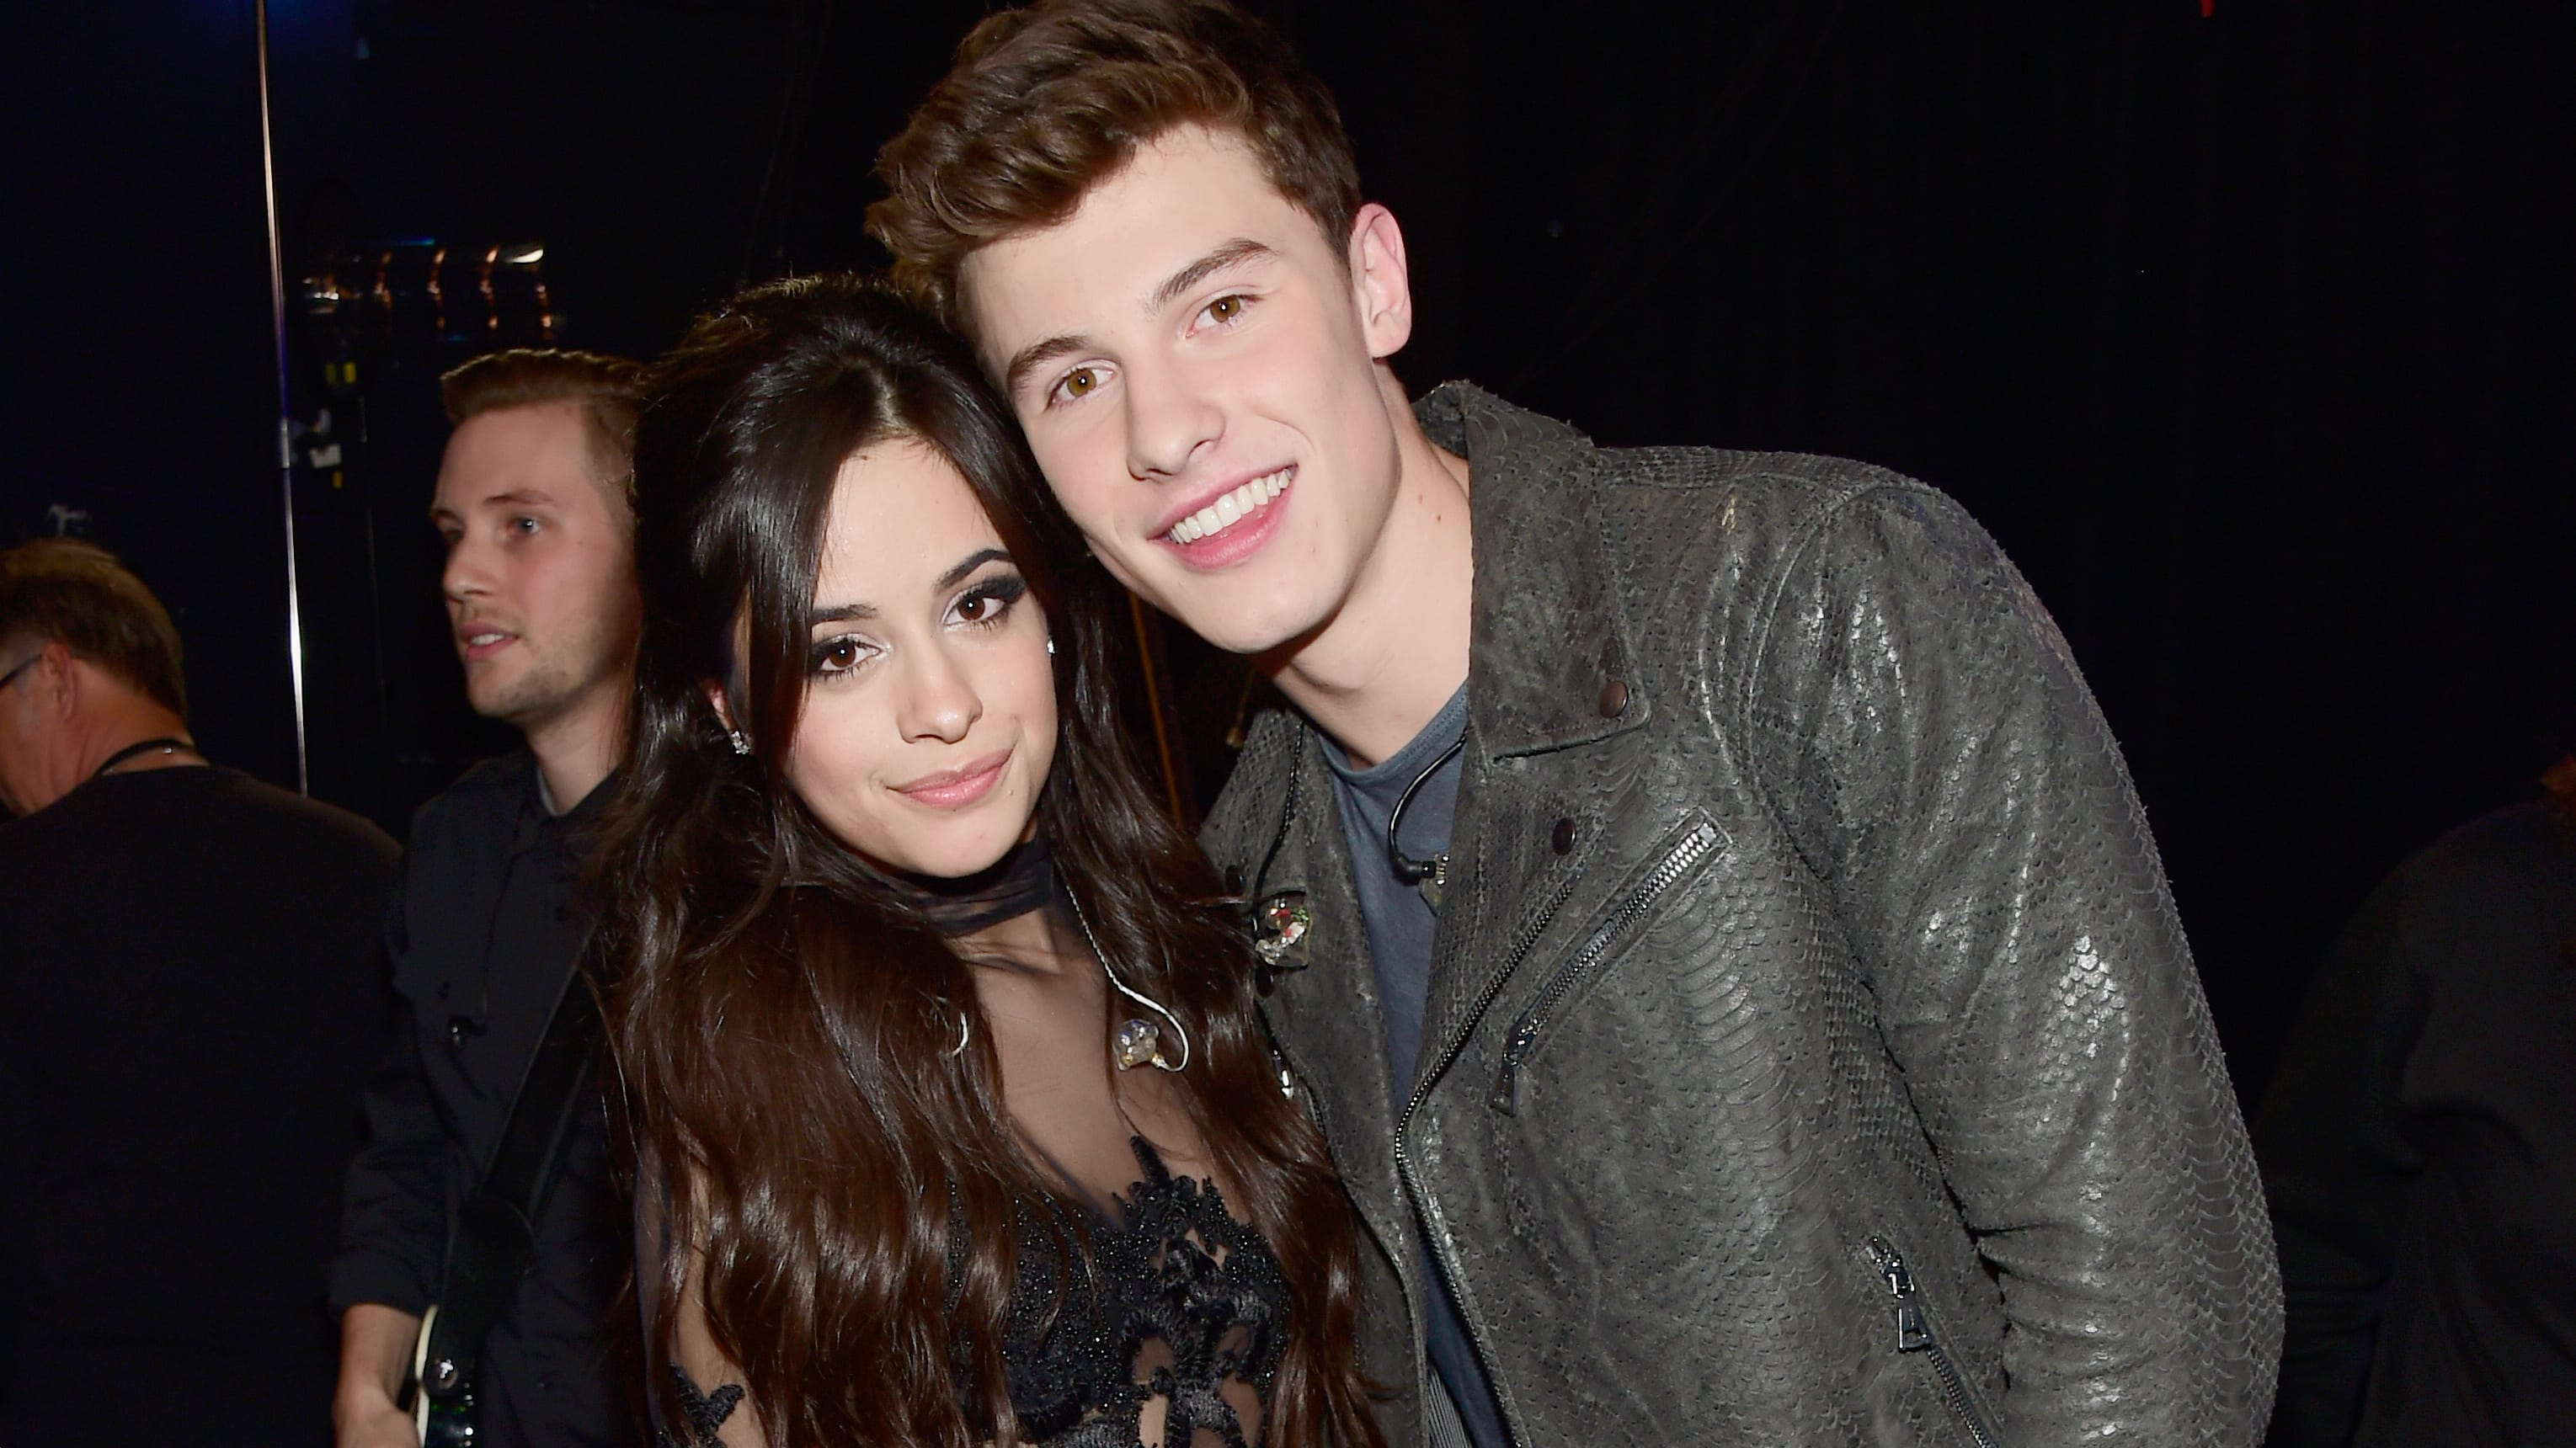 LOS ANGELES, CA - JANUARY 06:  Singer Camila Cabello and Shawn Mendes attend the People's Choice Awards 2016 at Microsoft Theater on January 6, 2016 in Los Angeles, California.  (Photo by Frazer Harrison/Getty Images for The People's Choice Awards)